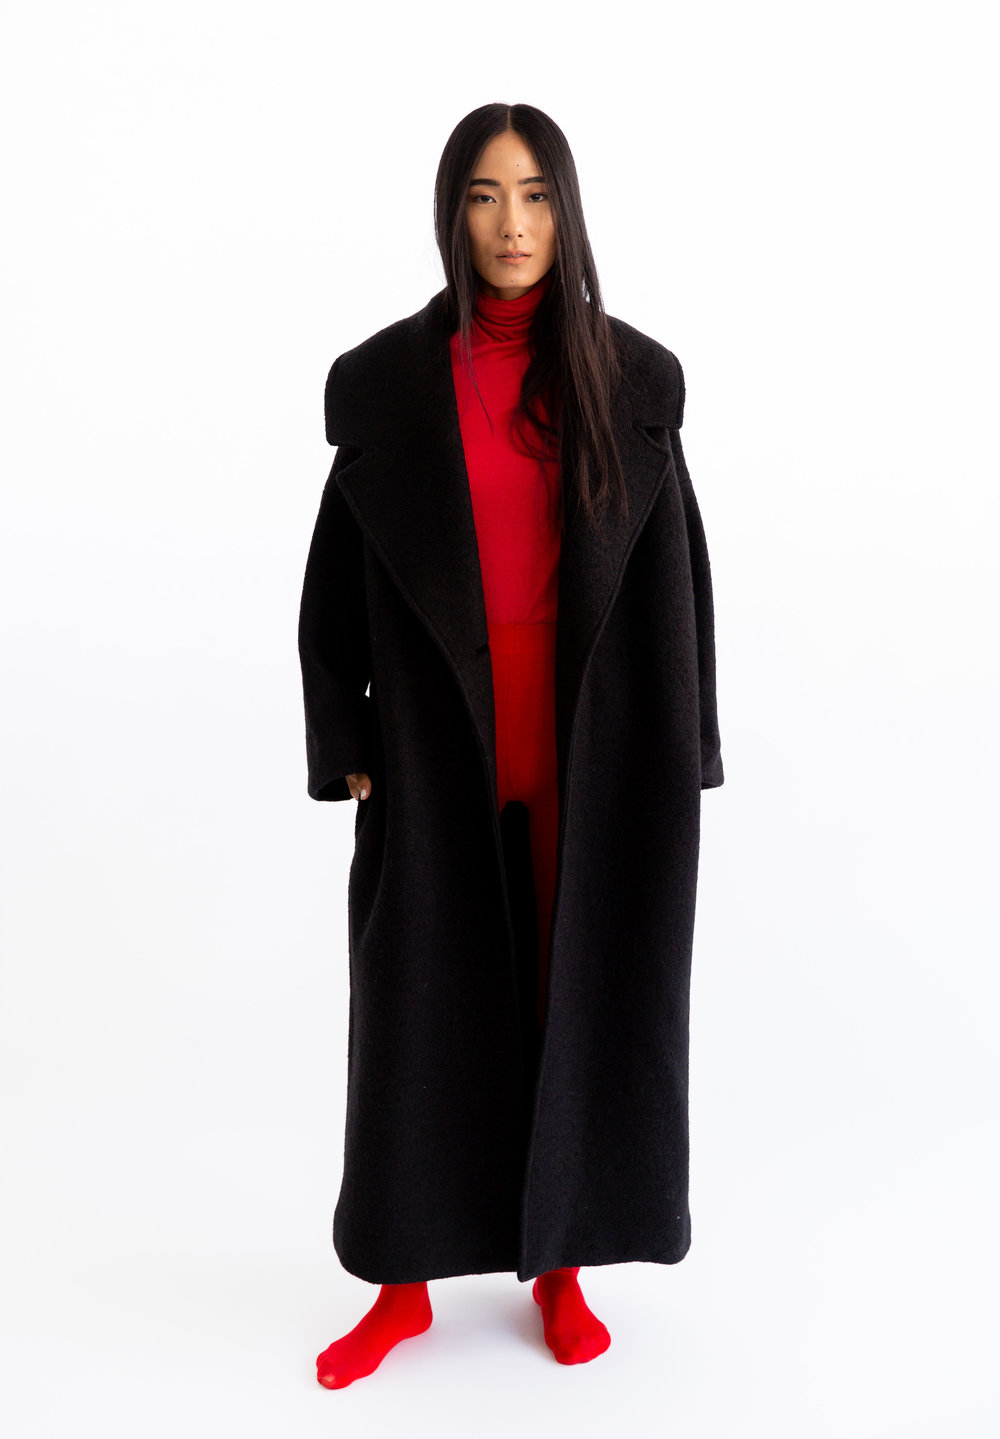 Jet Black Blanket by Mariam Alsibai on curated-crowd.com